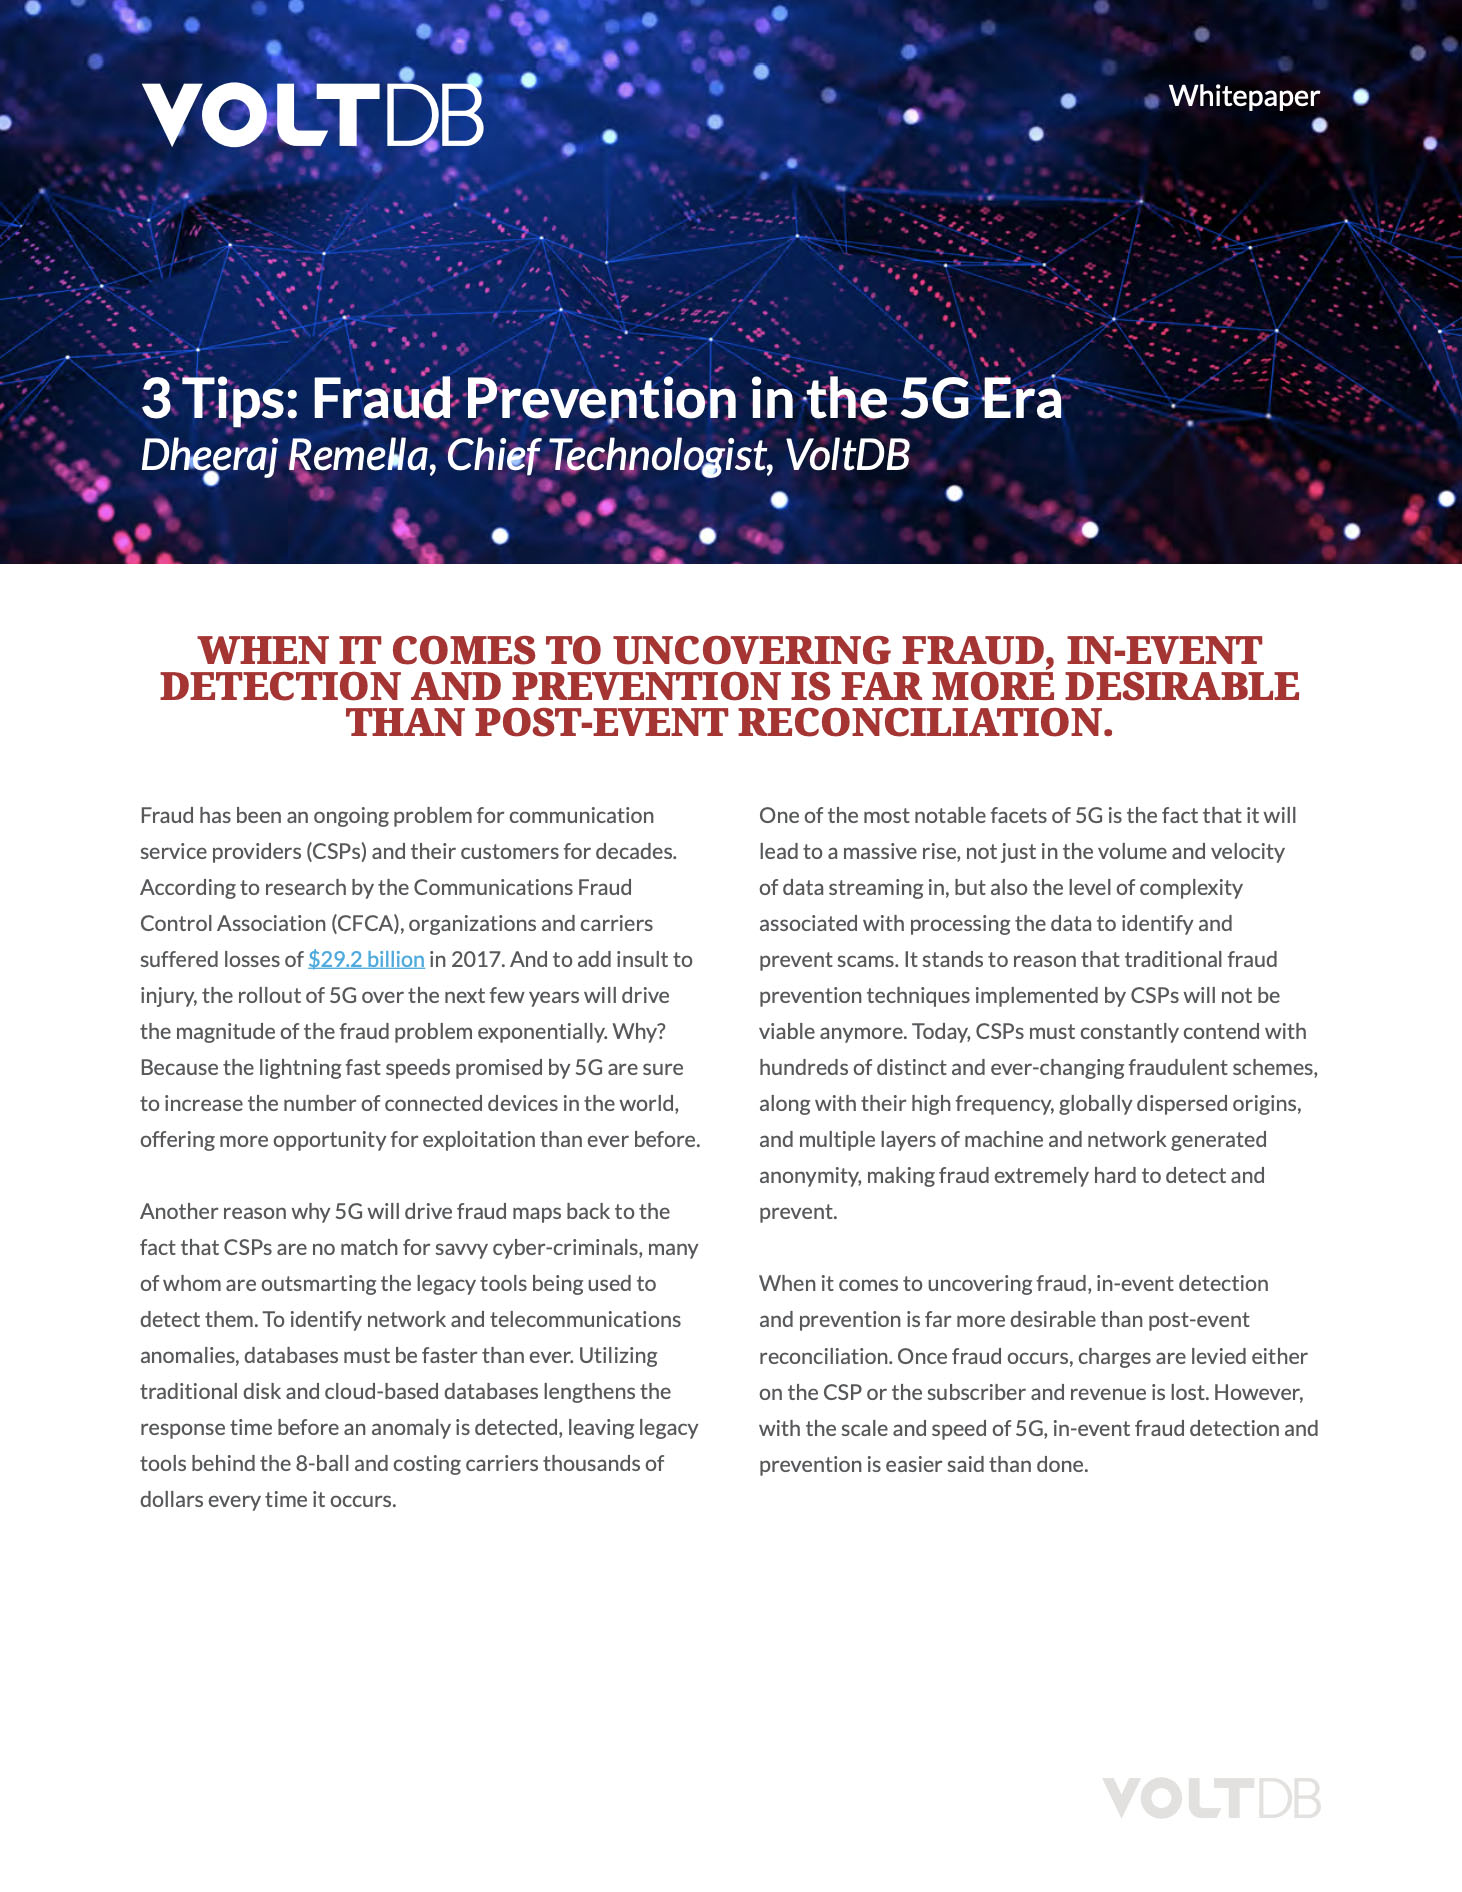 3 Tips for Fraud Prevention in 5G